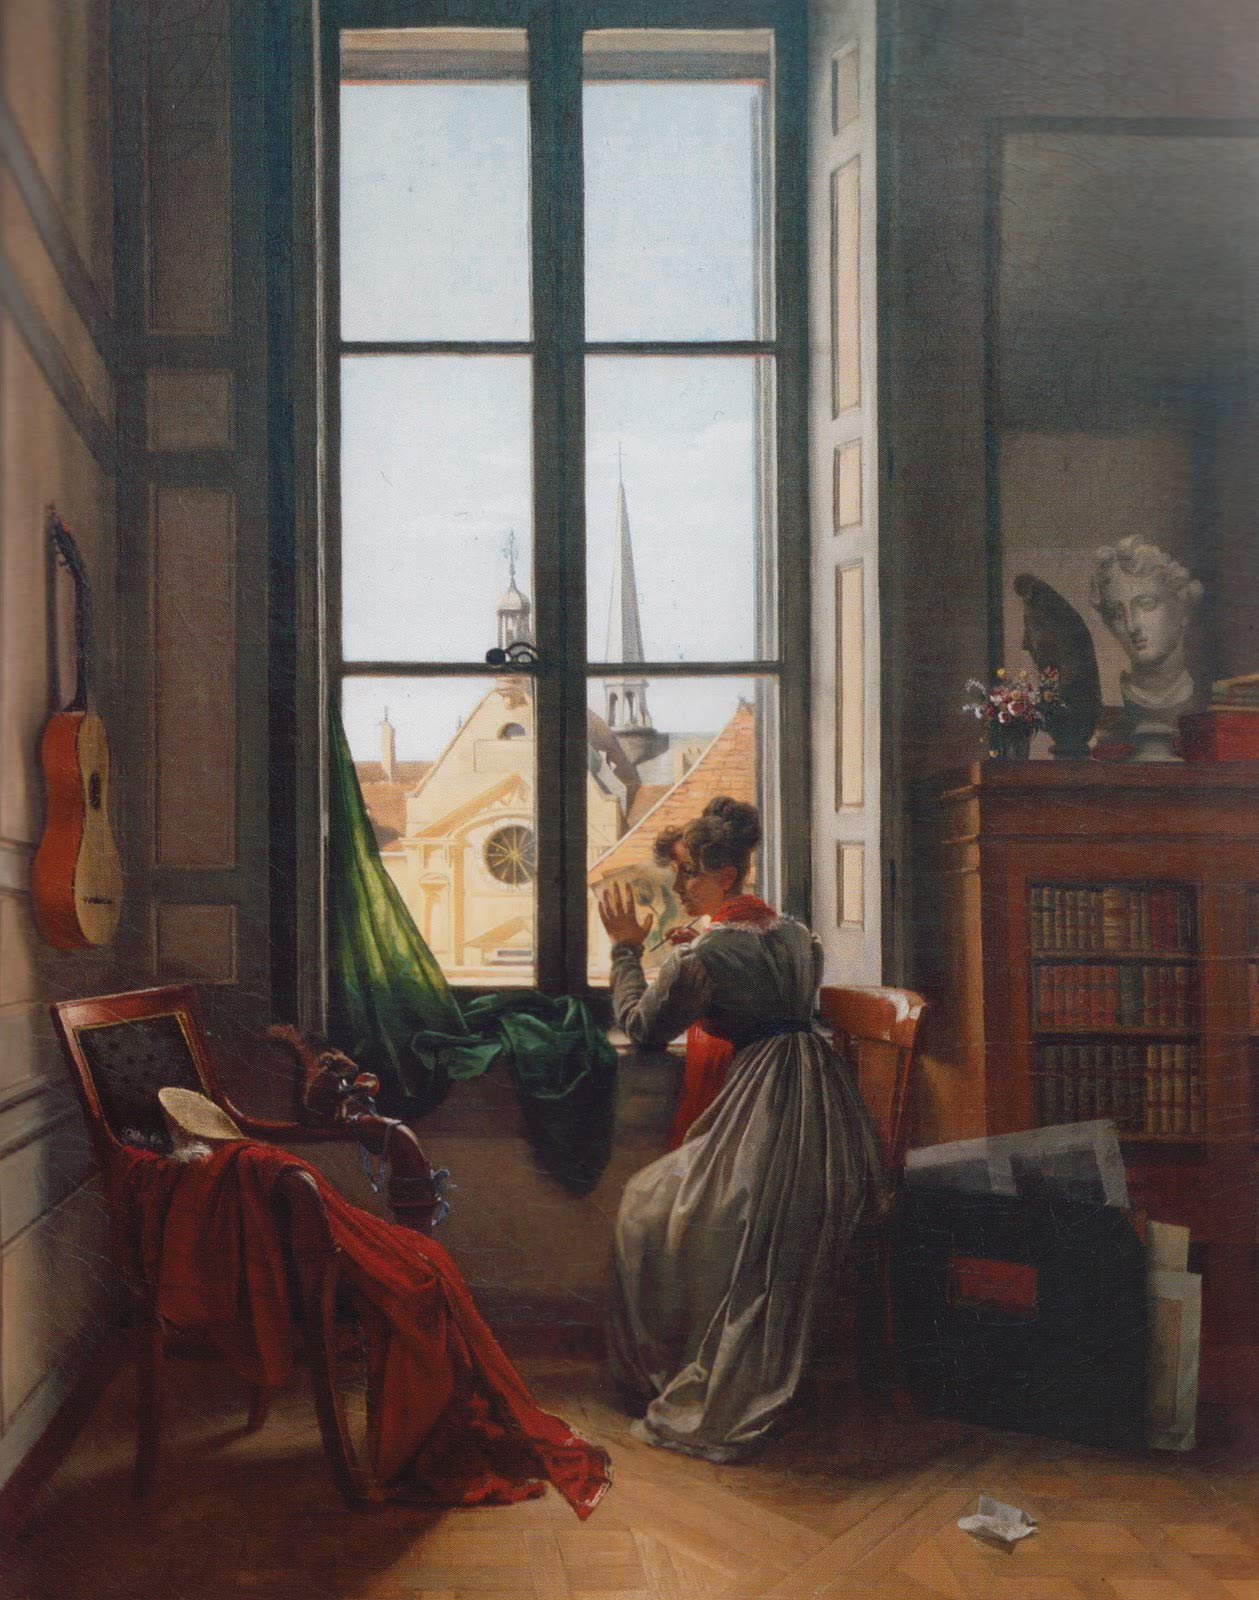 Amazon Com Louise Adeone Drolling Interior With Young Woman Tracing A Flower 1820 1822 Saint Louis Art Museum 30 X 24 Fine Art Giclee Canvas Print Unframed Reproduction Posters Prints